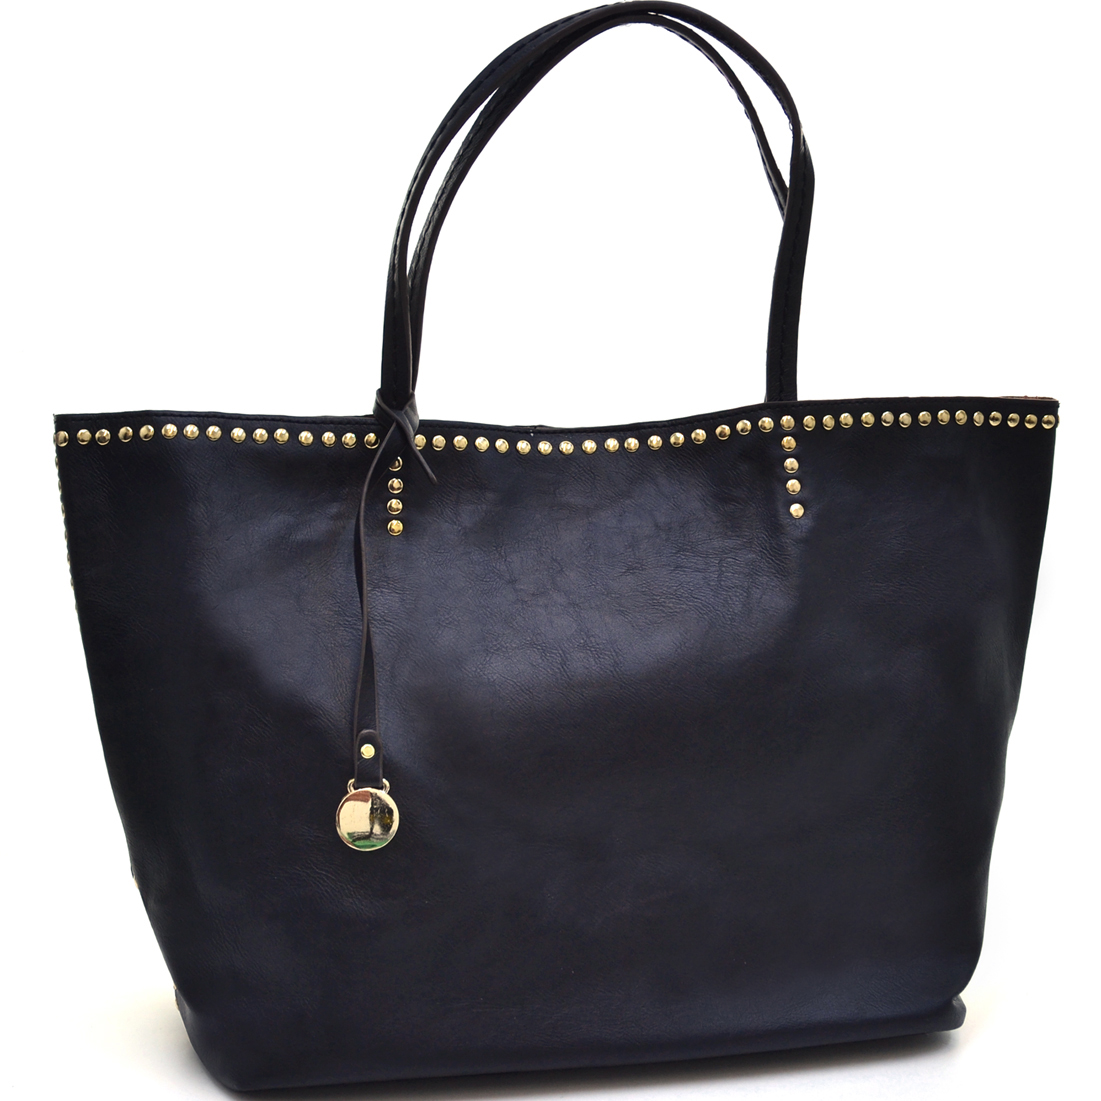 2 in 1 Oversized Fashion Tote With Subtle Gold Studs